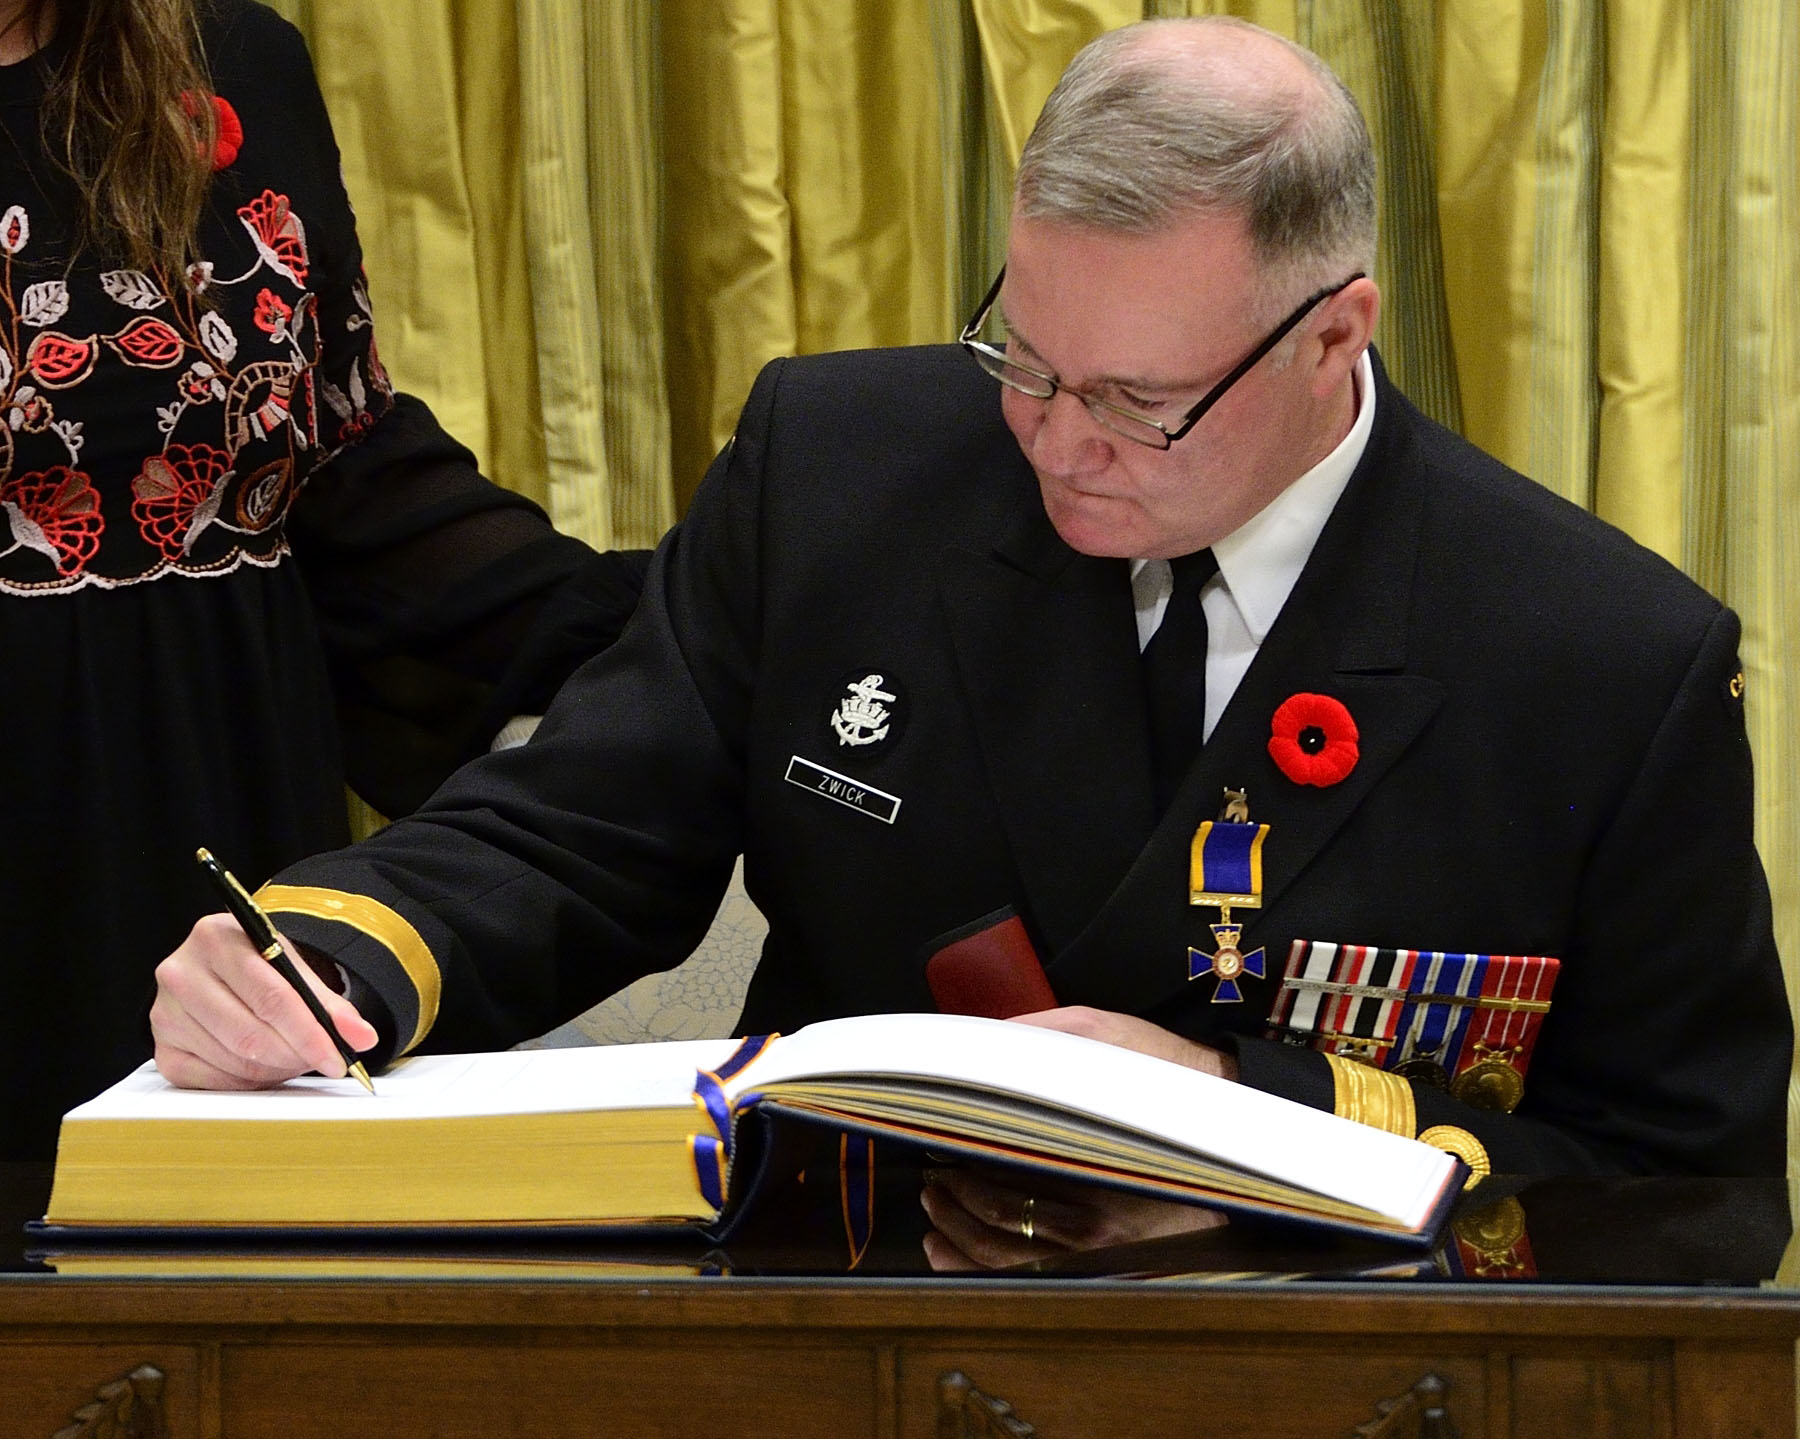 His Excellency presented the Order of Military Merit at the Officer level (O.M.M.) to Captain(N) Jeffery Blair Zwick, O.M.M., C.D., Office of Chief of Programme, Ottawa, Ontario.